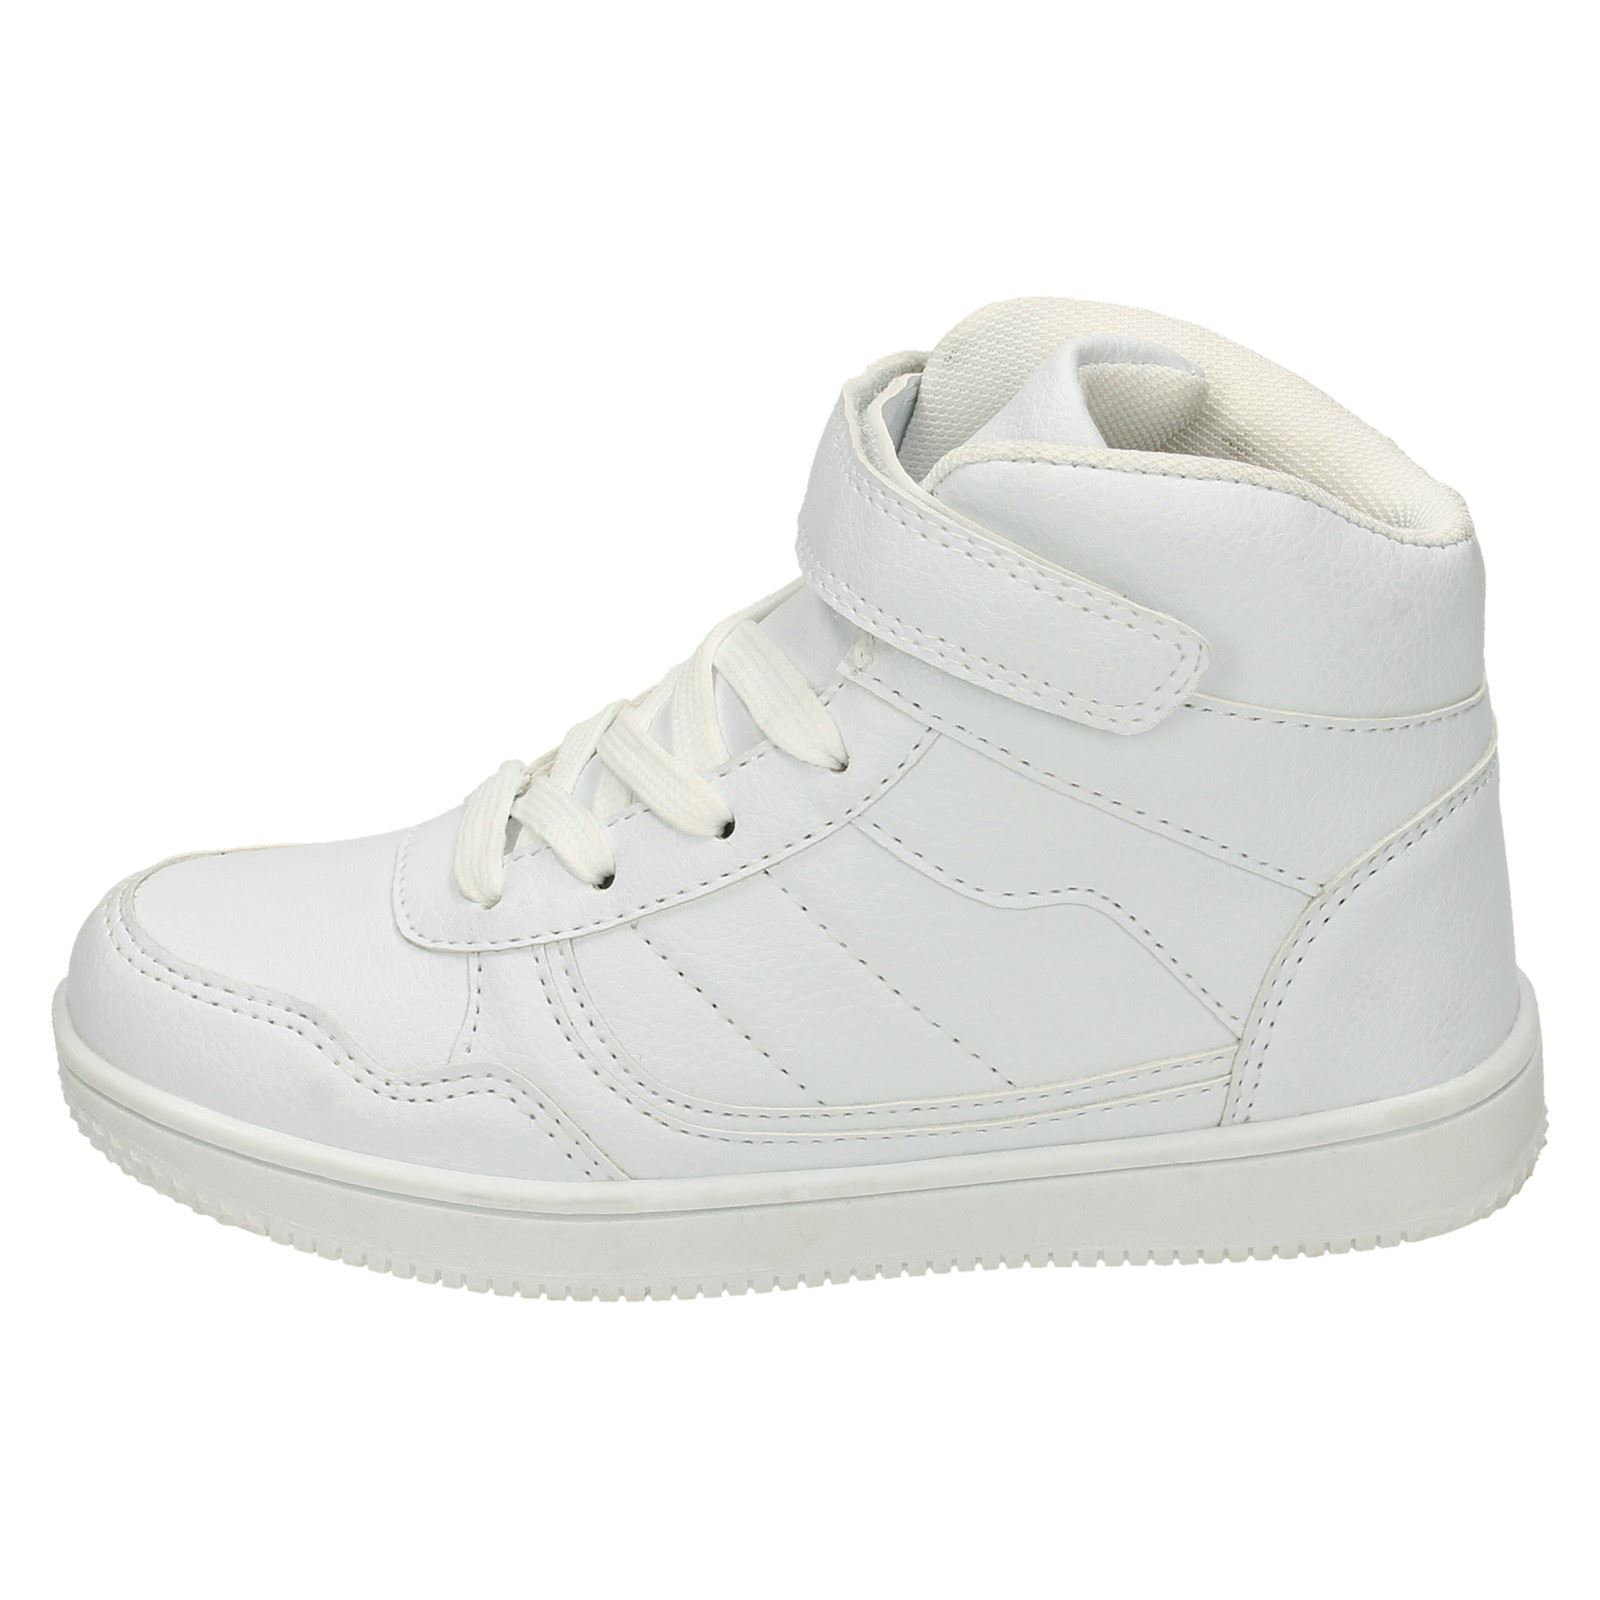 Schuhe Für Jungen Childs Spot On Black Or White Hi-top Trainers Style H4127